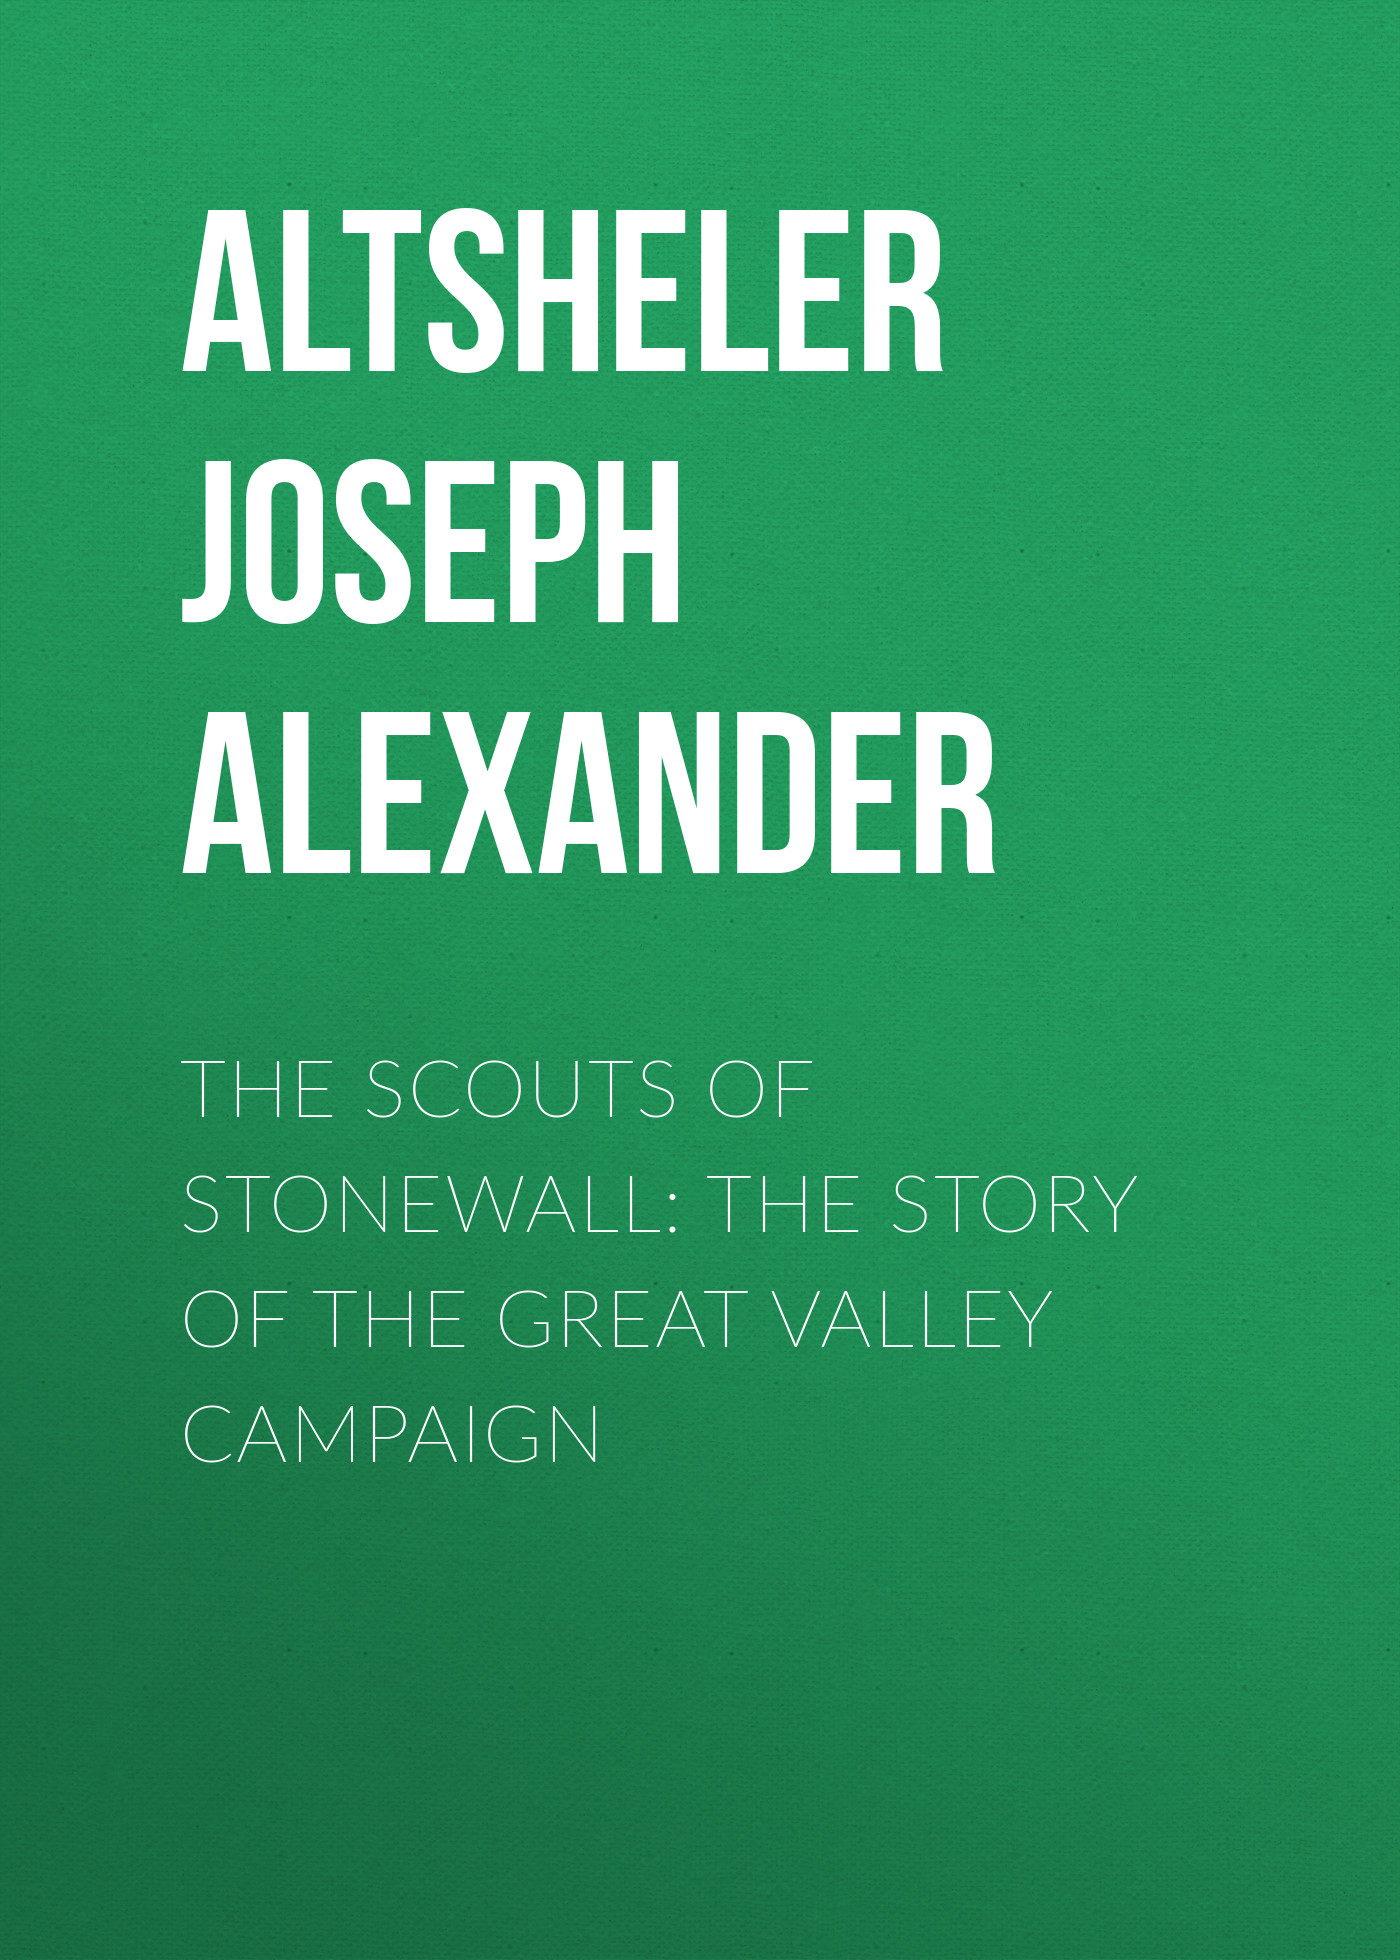 Altsheler Joseph Alexander The Scouts of Stonewall: The Story of the Great Valley Campaign skirt joseph alexander page 2